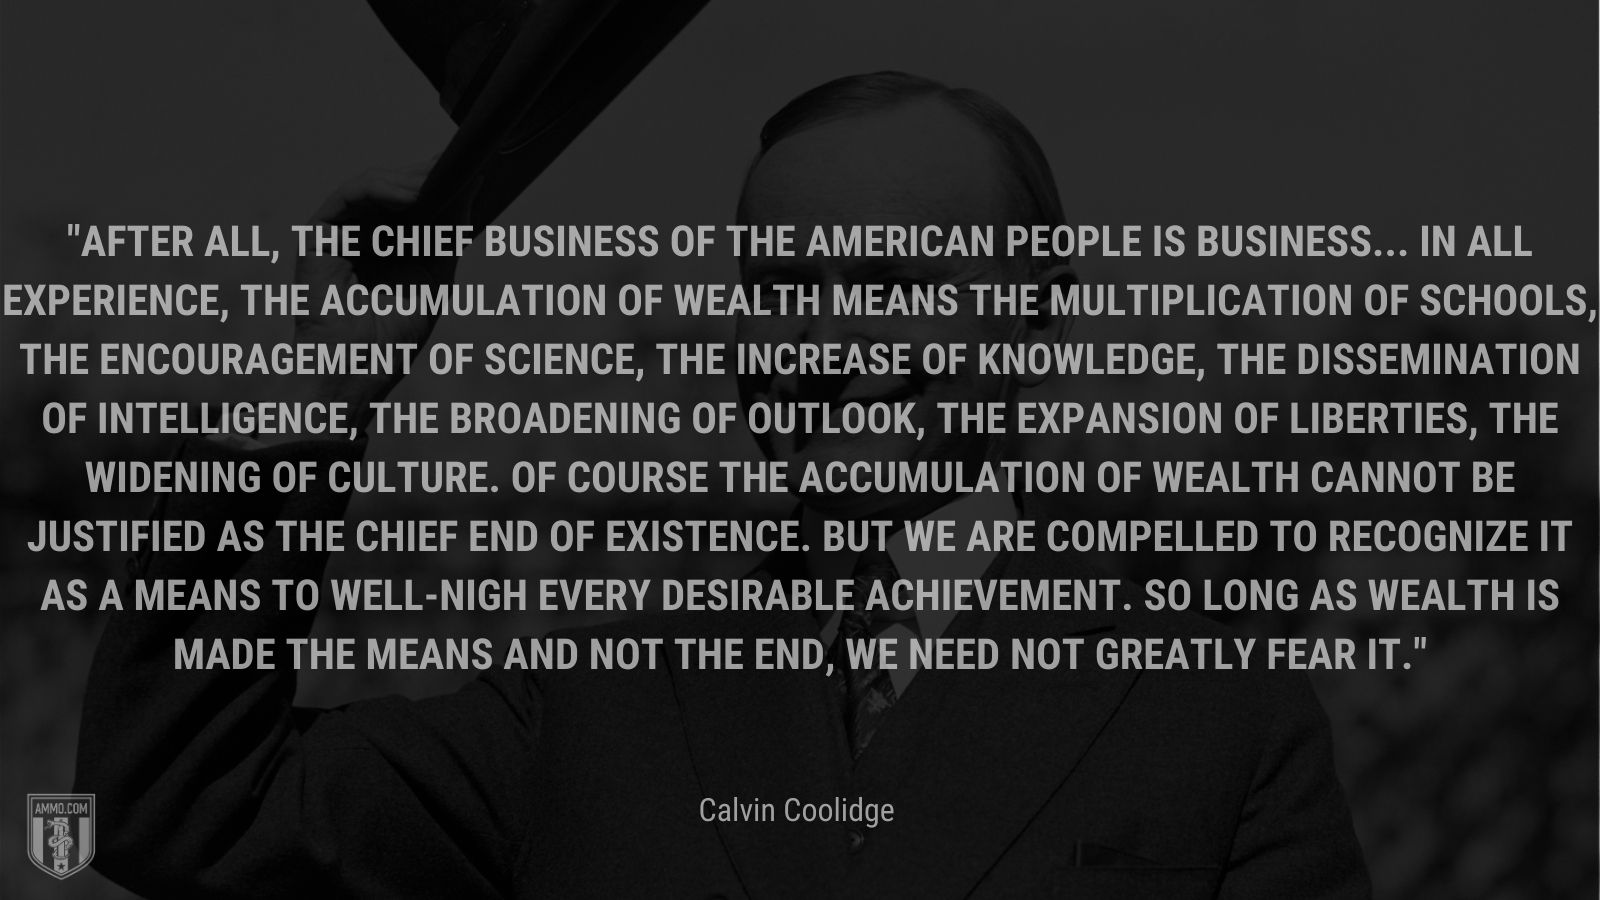 """""""After all, the chief business of the American people is business... In all experience, the accumulation of wealth means the multiplication of schools, the encouragement of science, the increase of knowledge, the dissemination of intelligence, the broadening of outlook, the expansion of liberties, the widening of culture. Of course the accumulation of wealth cannot be justified as the chief end of existence. But we are compelled to recognize it as a means to well-nigh every desirable achievement. So long as wealth is made the means and not the end, we need not greatly fear it."""" - Calvin Coolidge"""